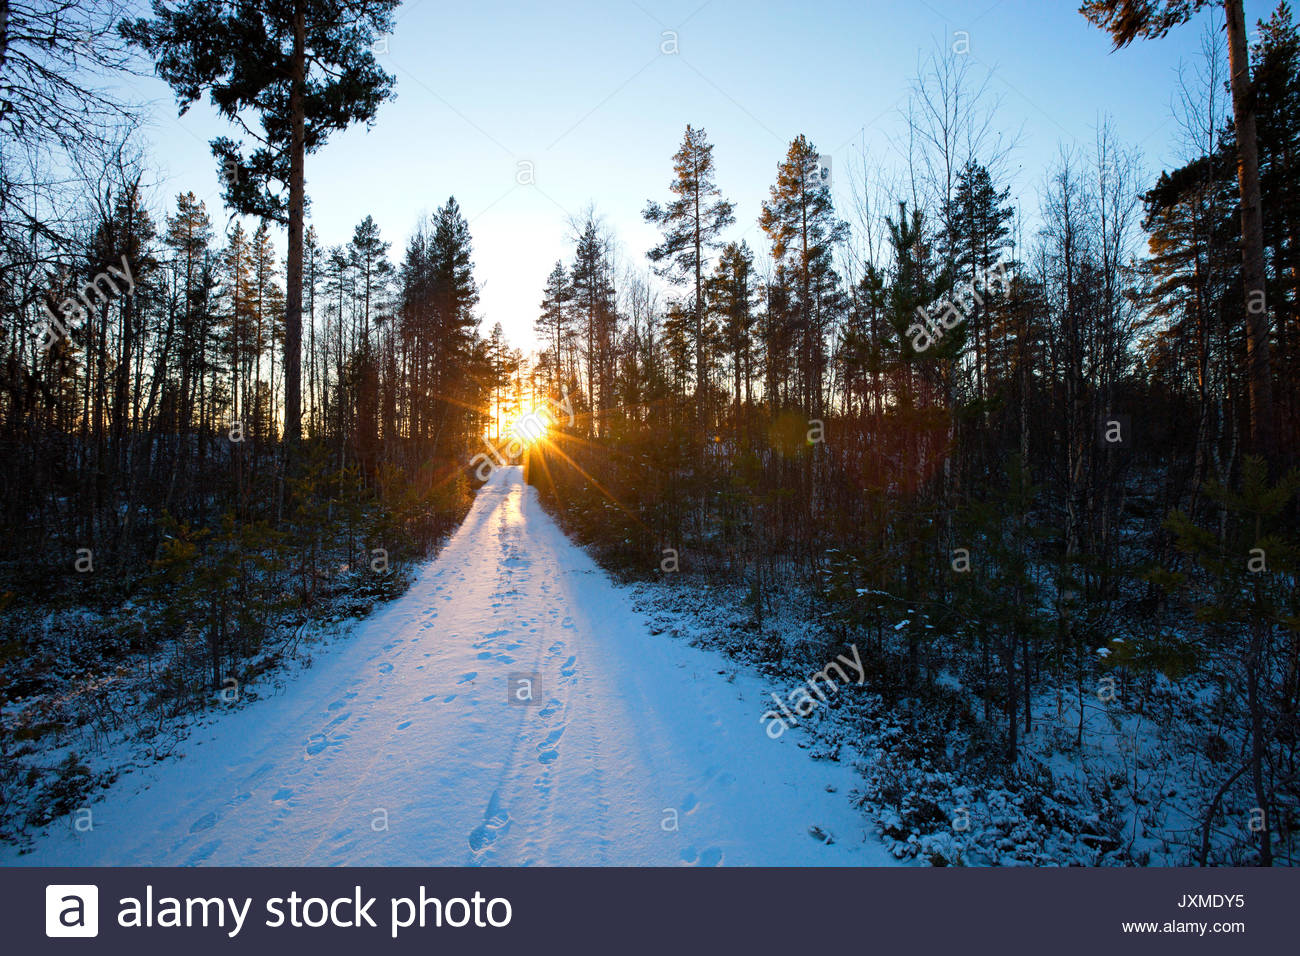 Thin snow covers a forest lane at sunset. - Stock Image